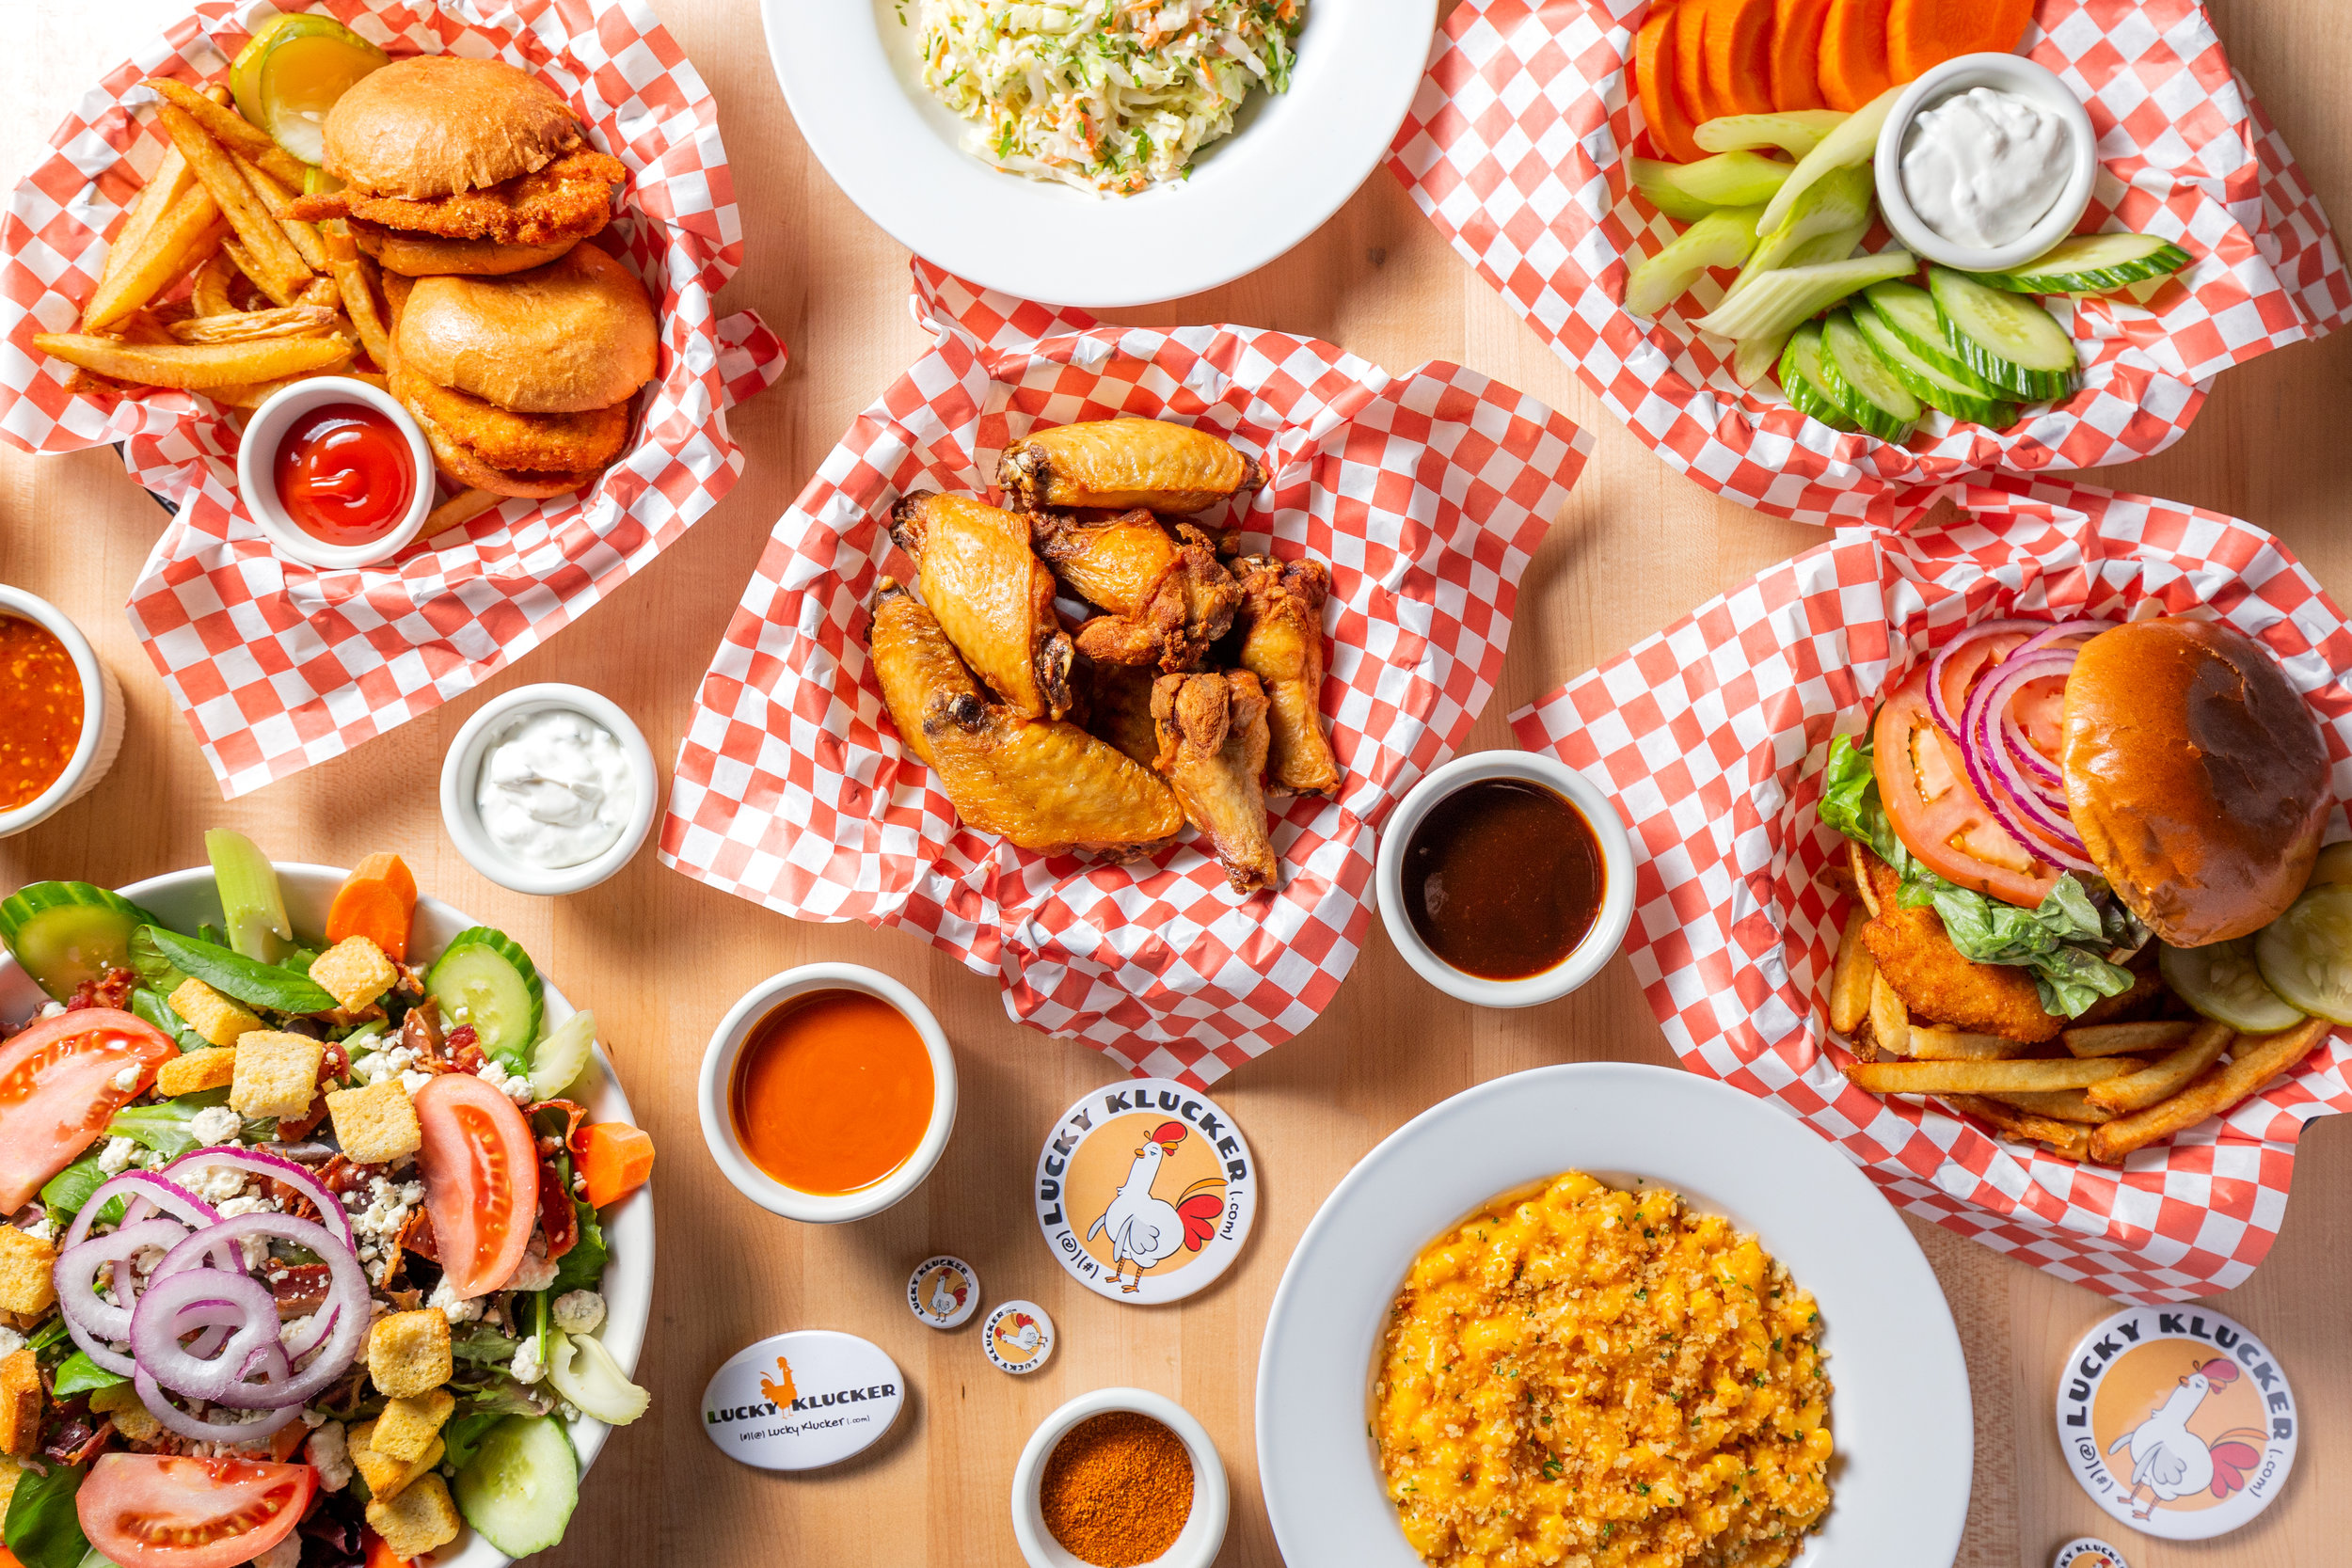 CATERING - Craving wings while watching the game? Keeping it cool with the work crew? Family picnic need a chicken tender? Let the Lucky Klucker cater your next event!